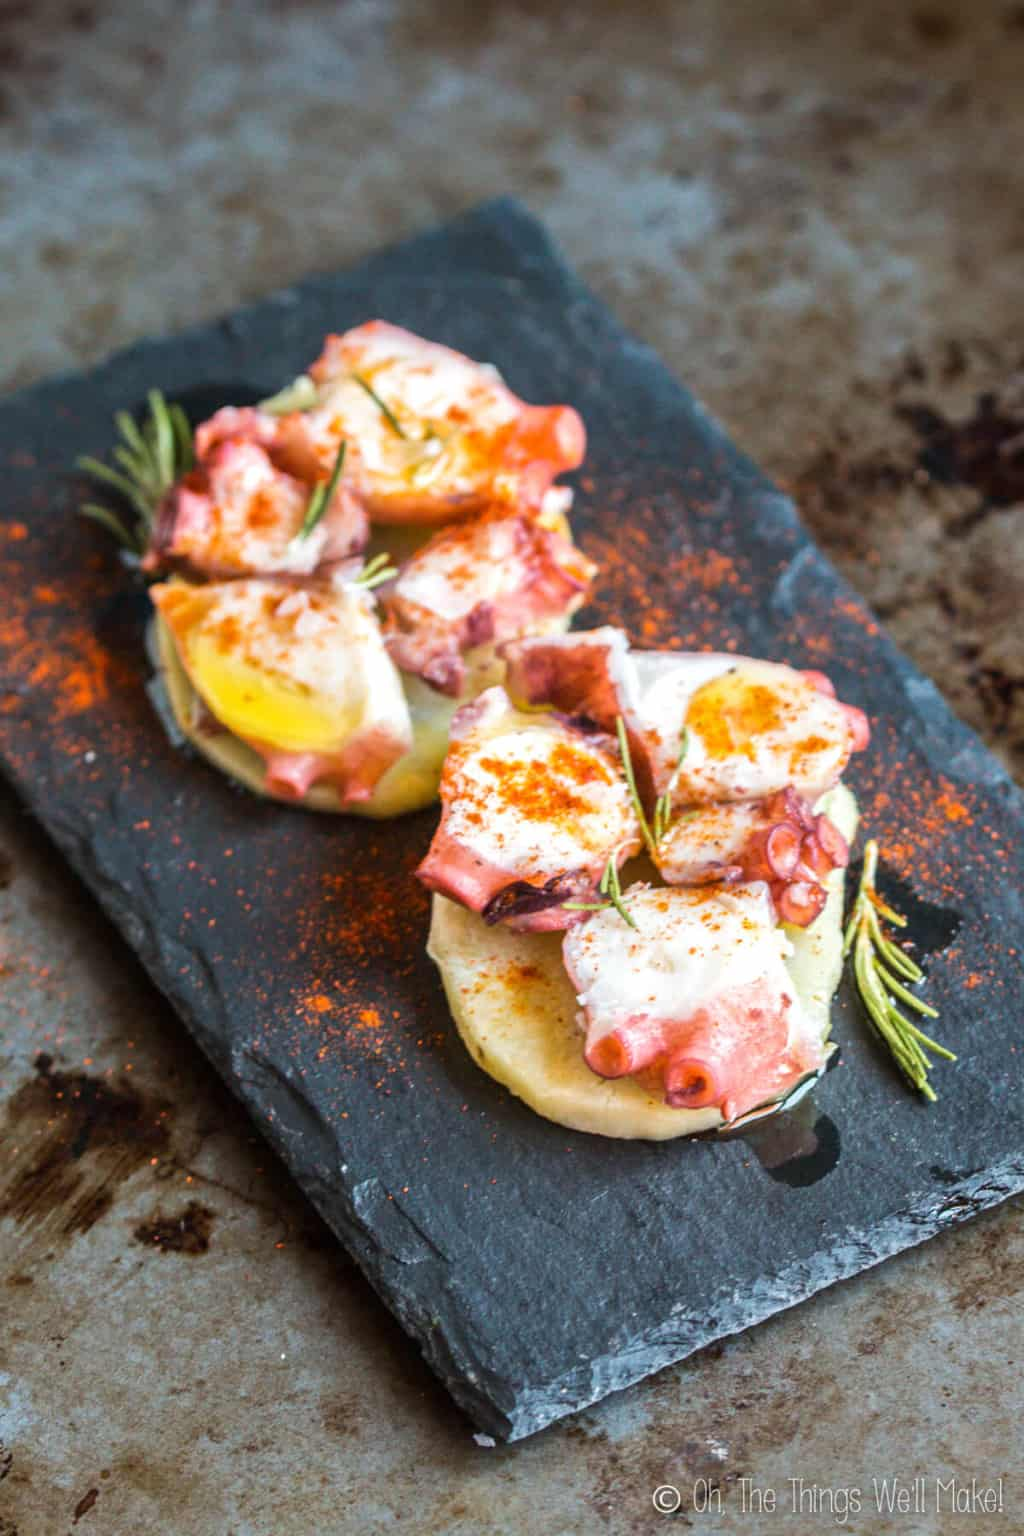 Close up top view of two servings of pulpo a la gallega, galician style octopus on a single slice of potato, placed on a black slate platter.